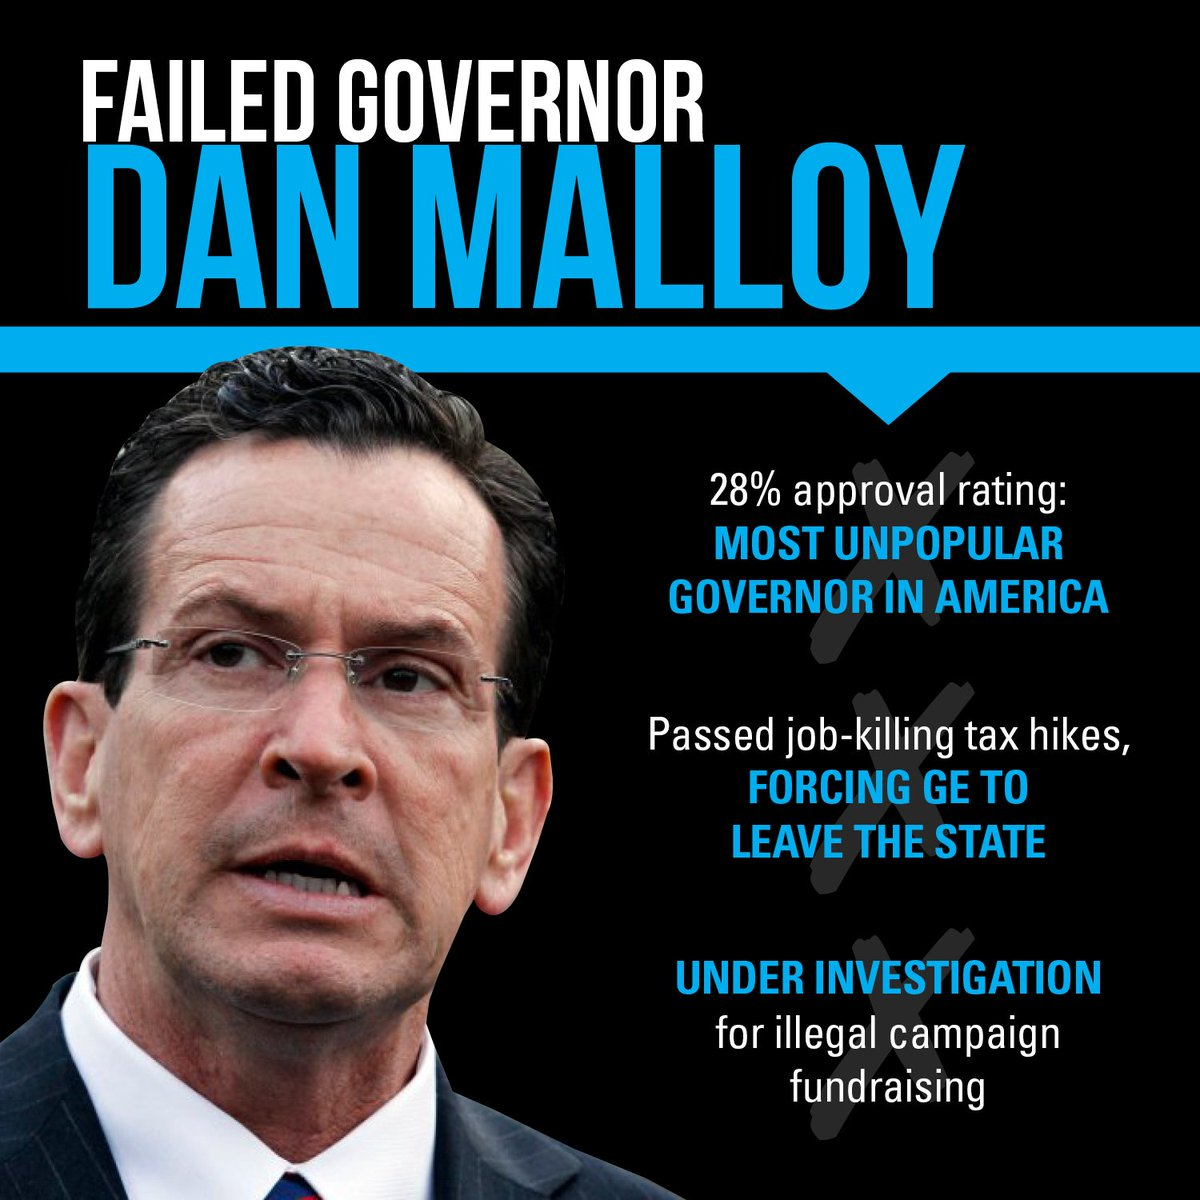 Failed Governor @DanMalloyCT has been a disaster for Connecticut. #DemConvention #DemsInPhilly @DemGovs https://t.co/e7VBAqZJDC